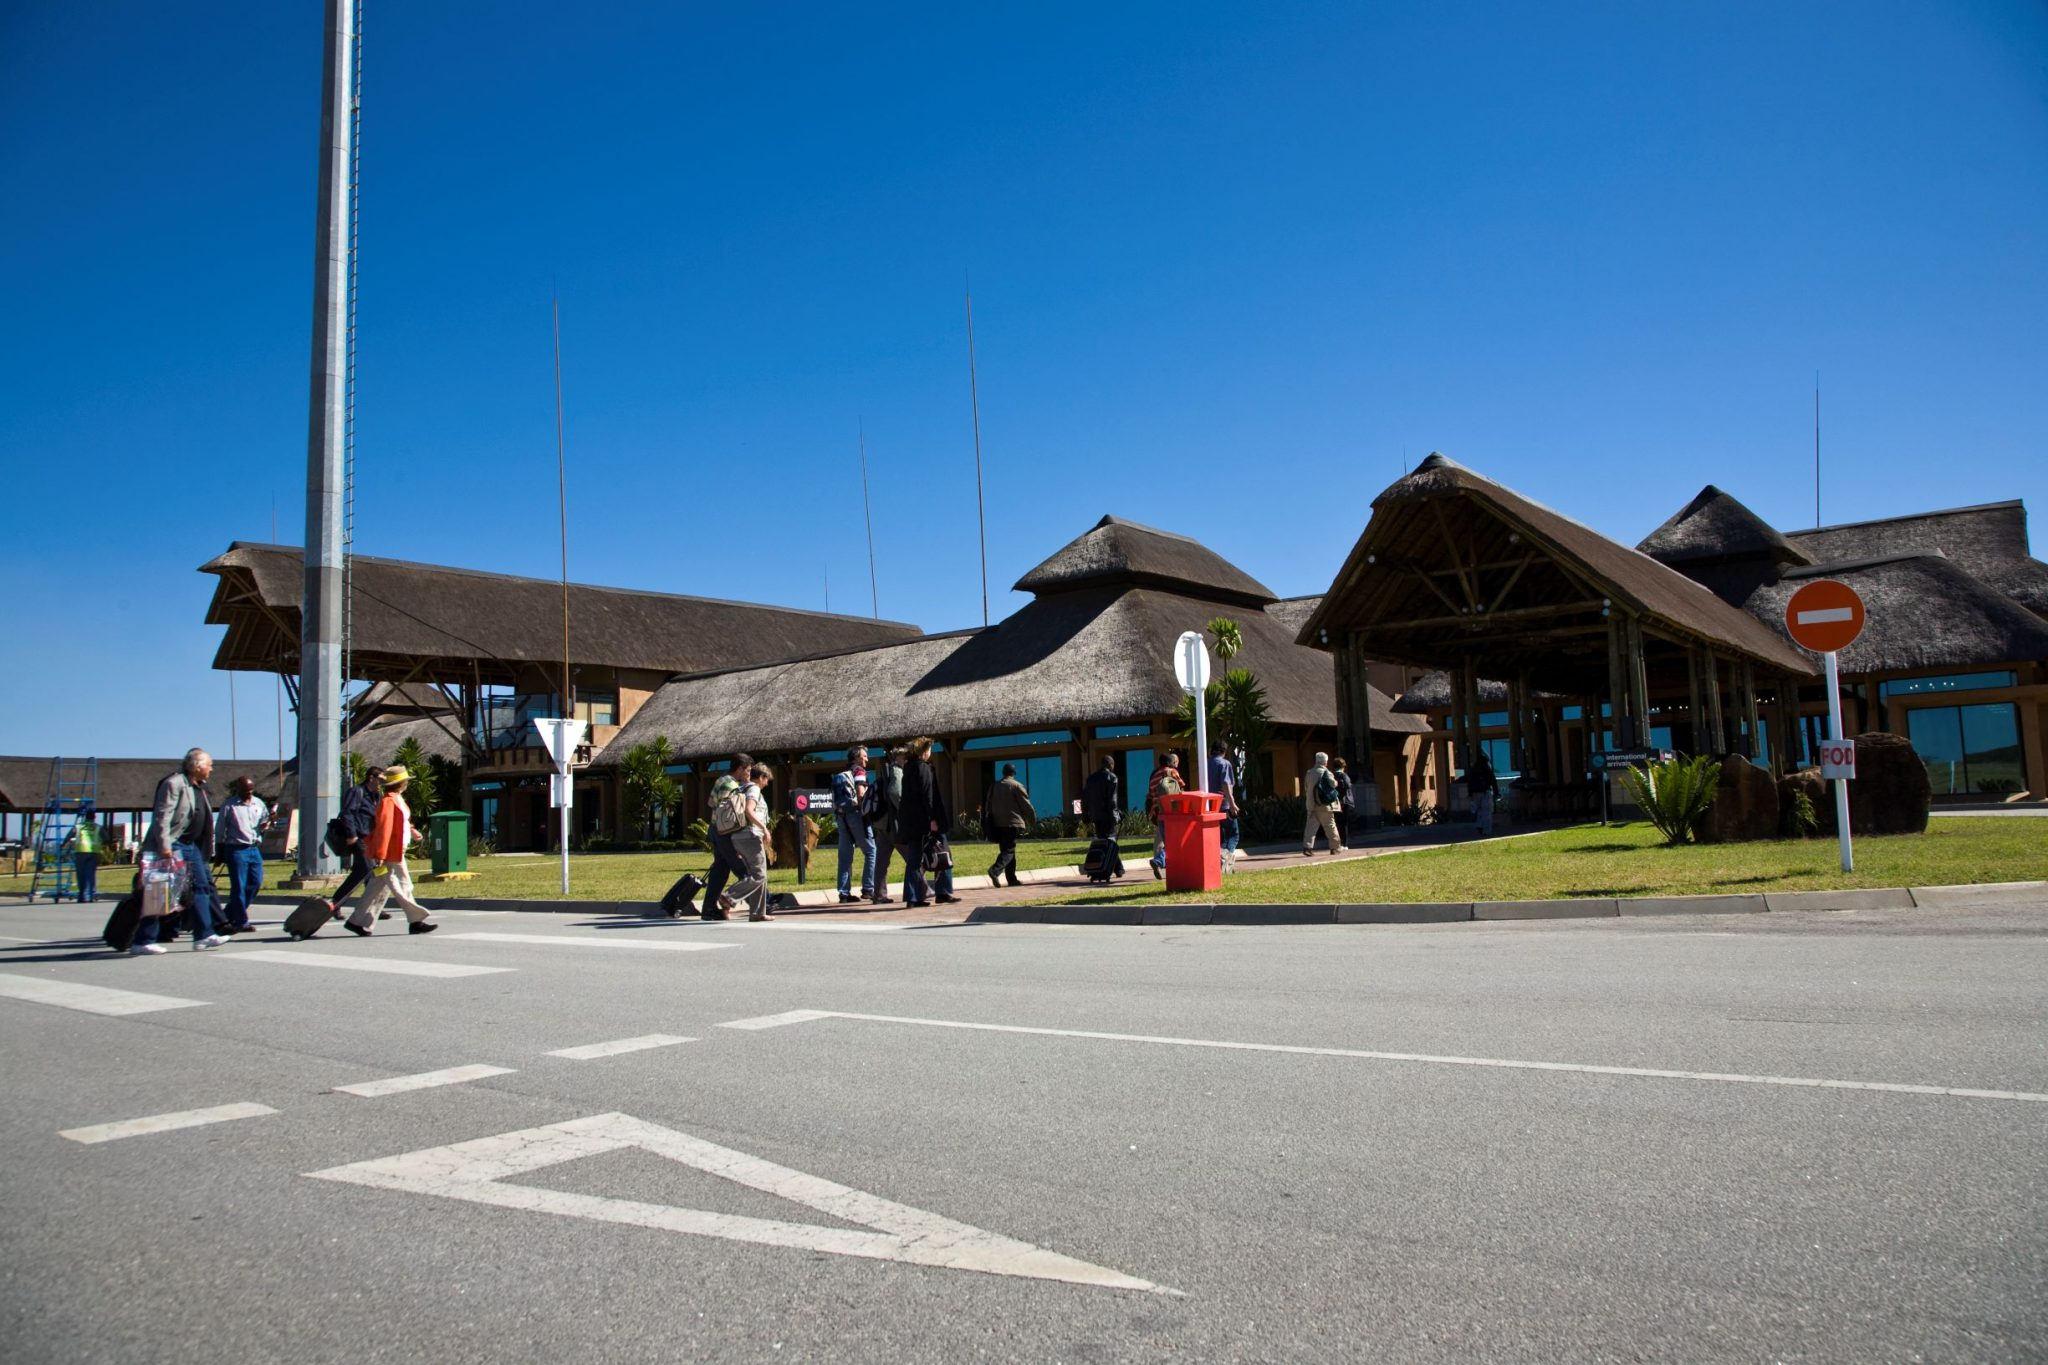 International airport building in mpumalanga